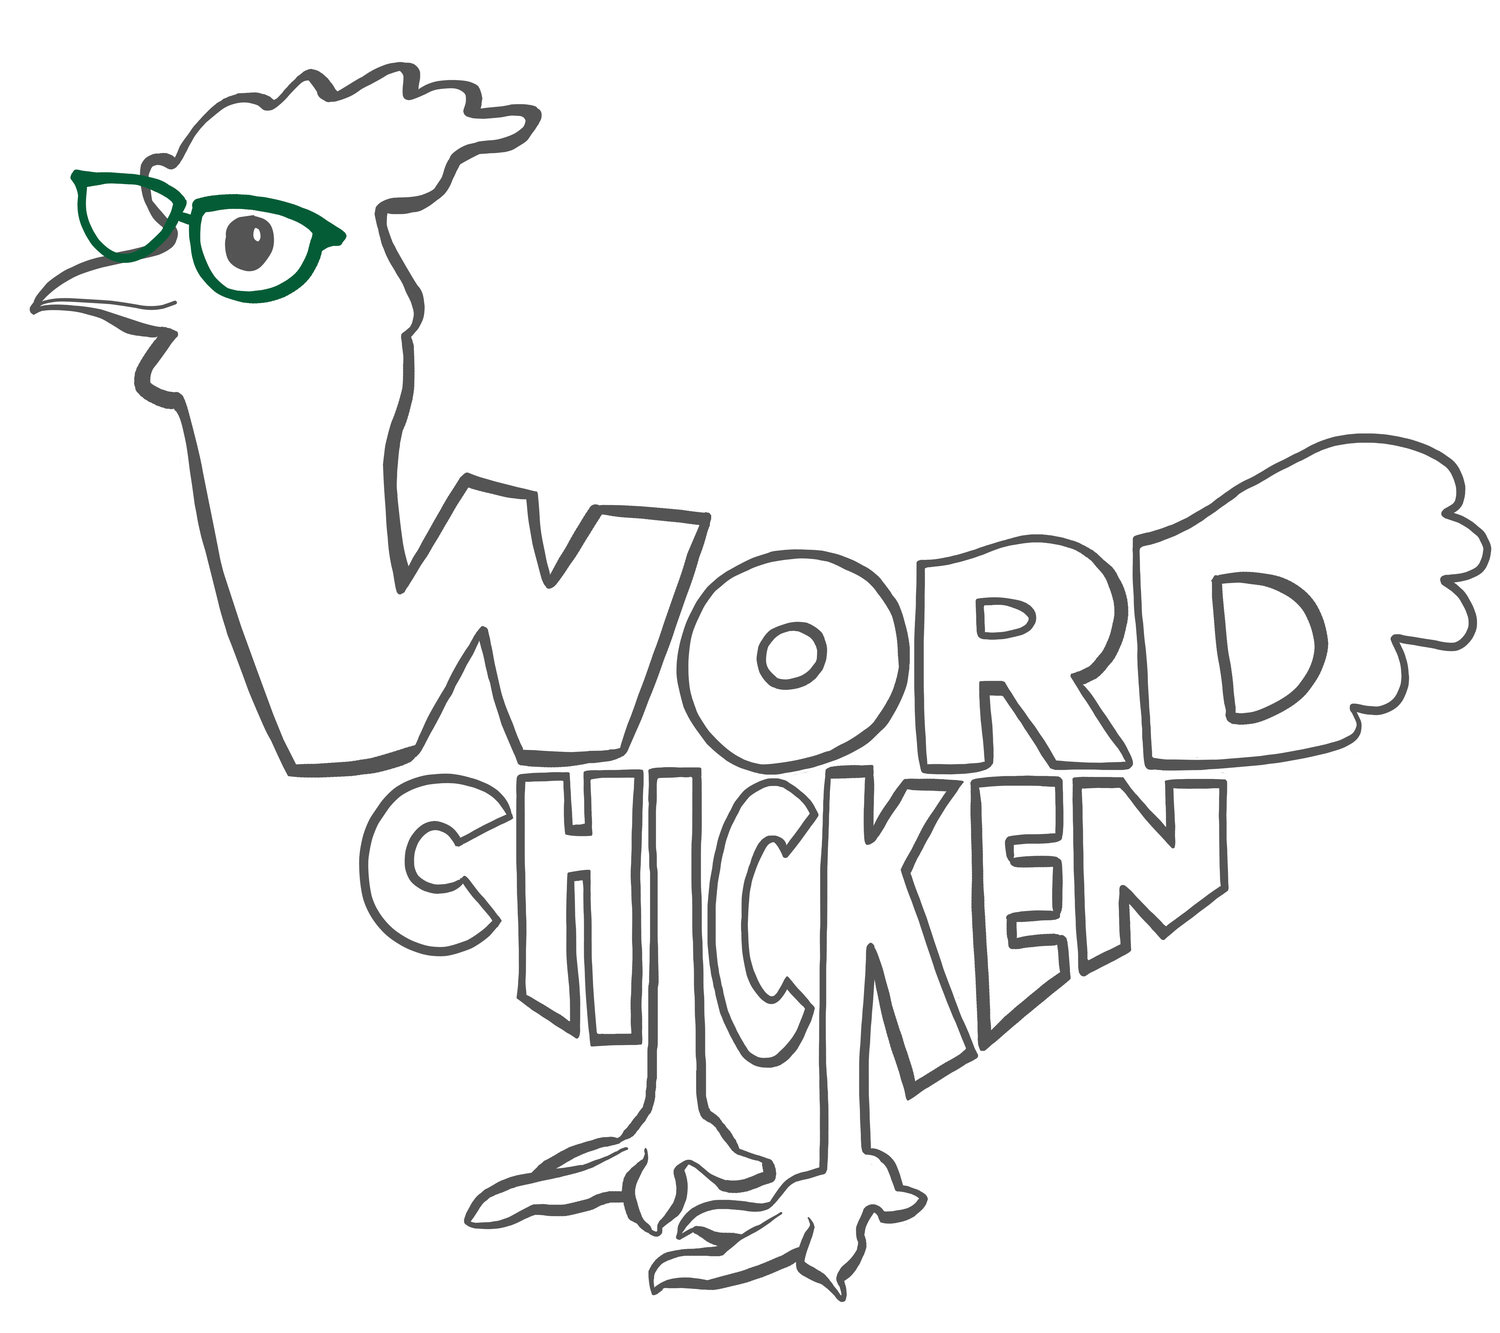 Word Chicken